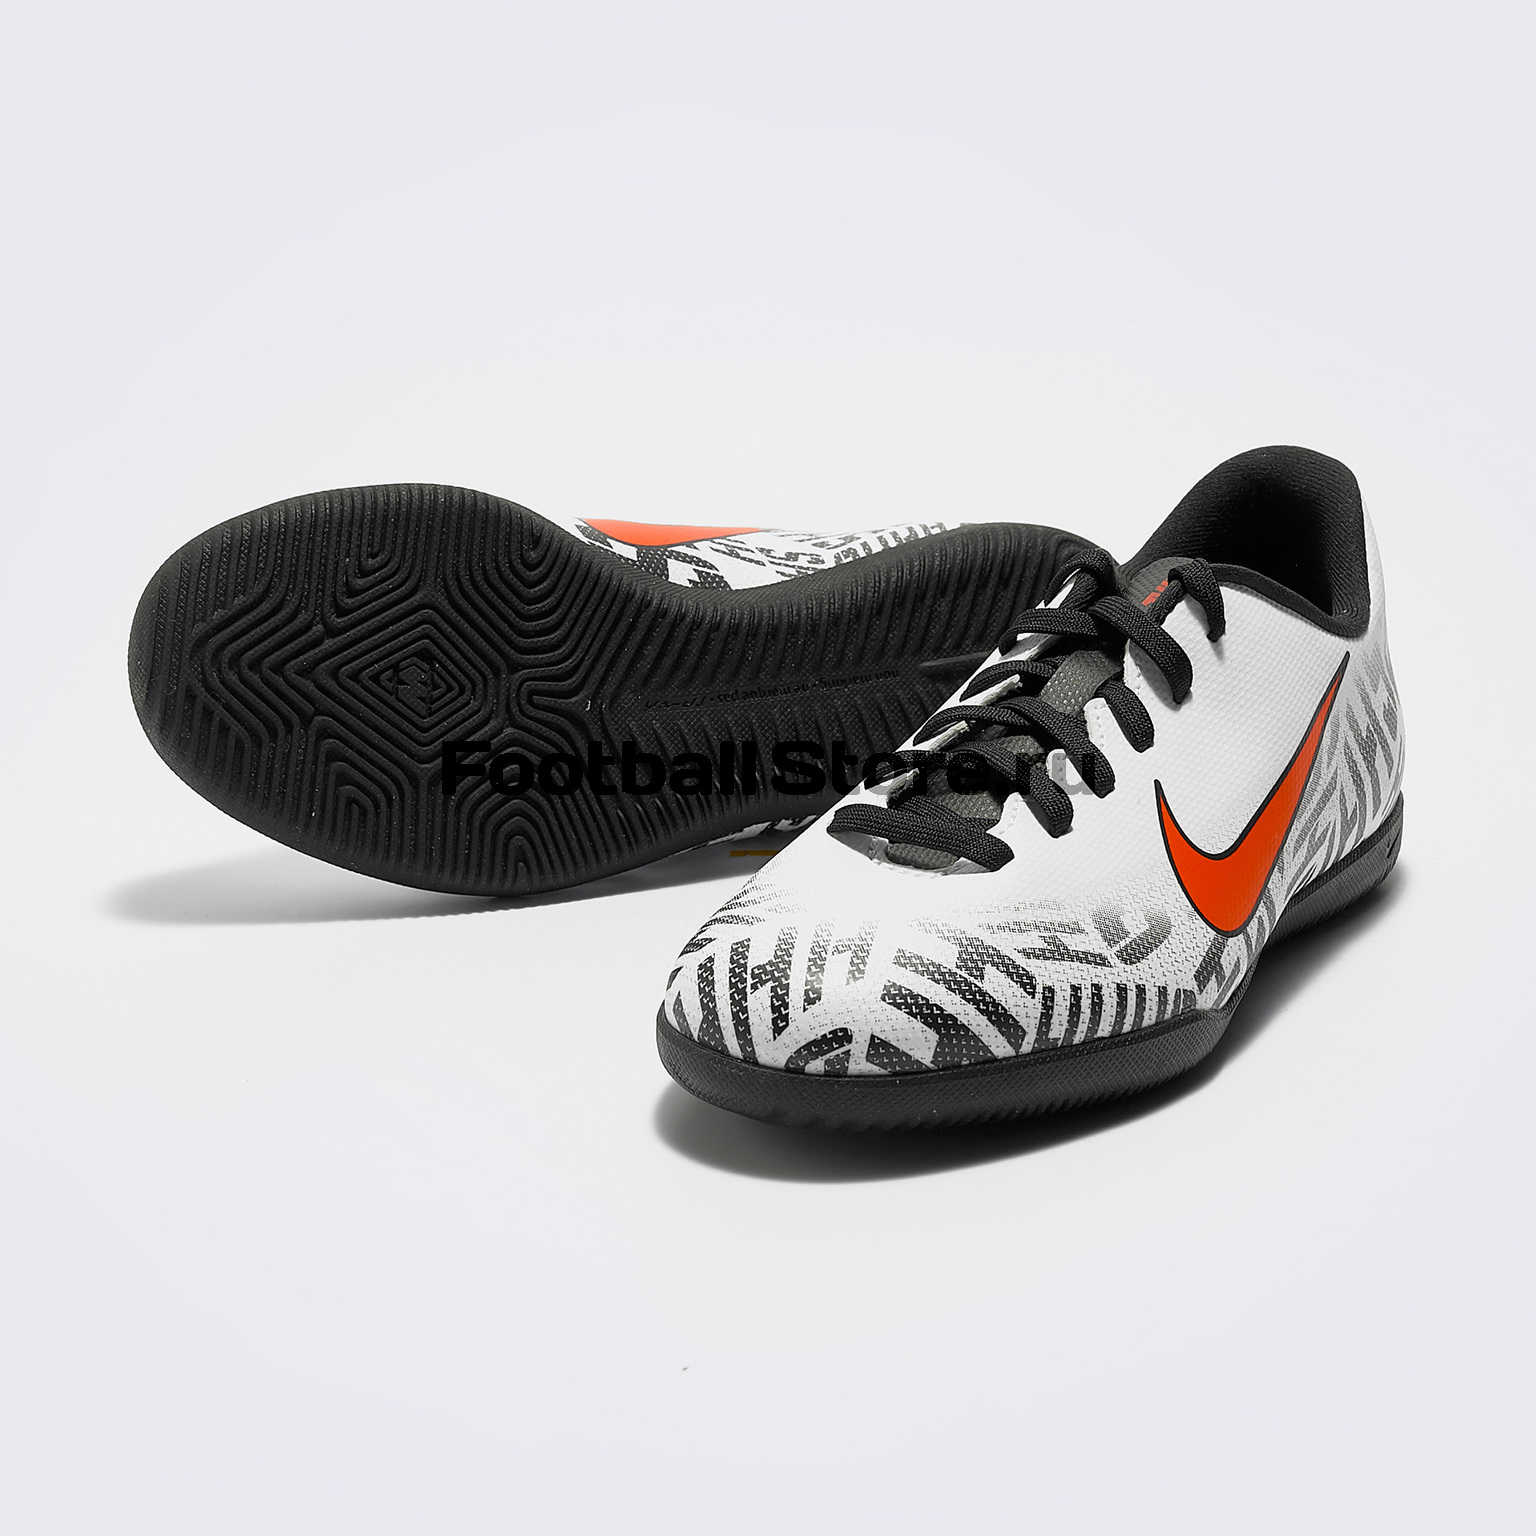 Футзалки детские Nike Vapor 12 Club GS Neymar IC AV4763-170